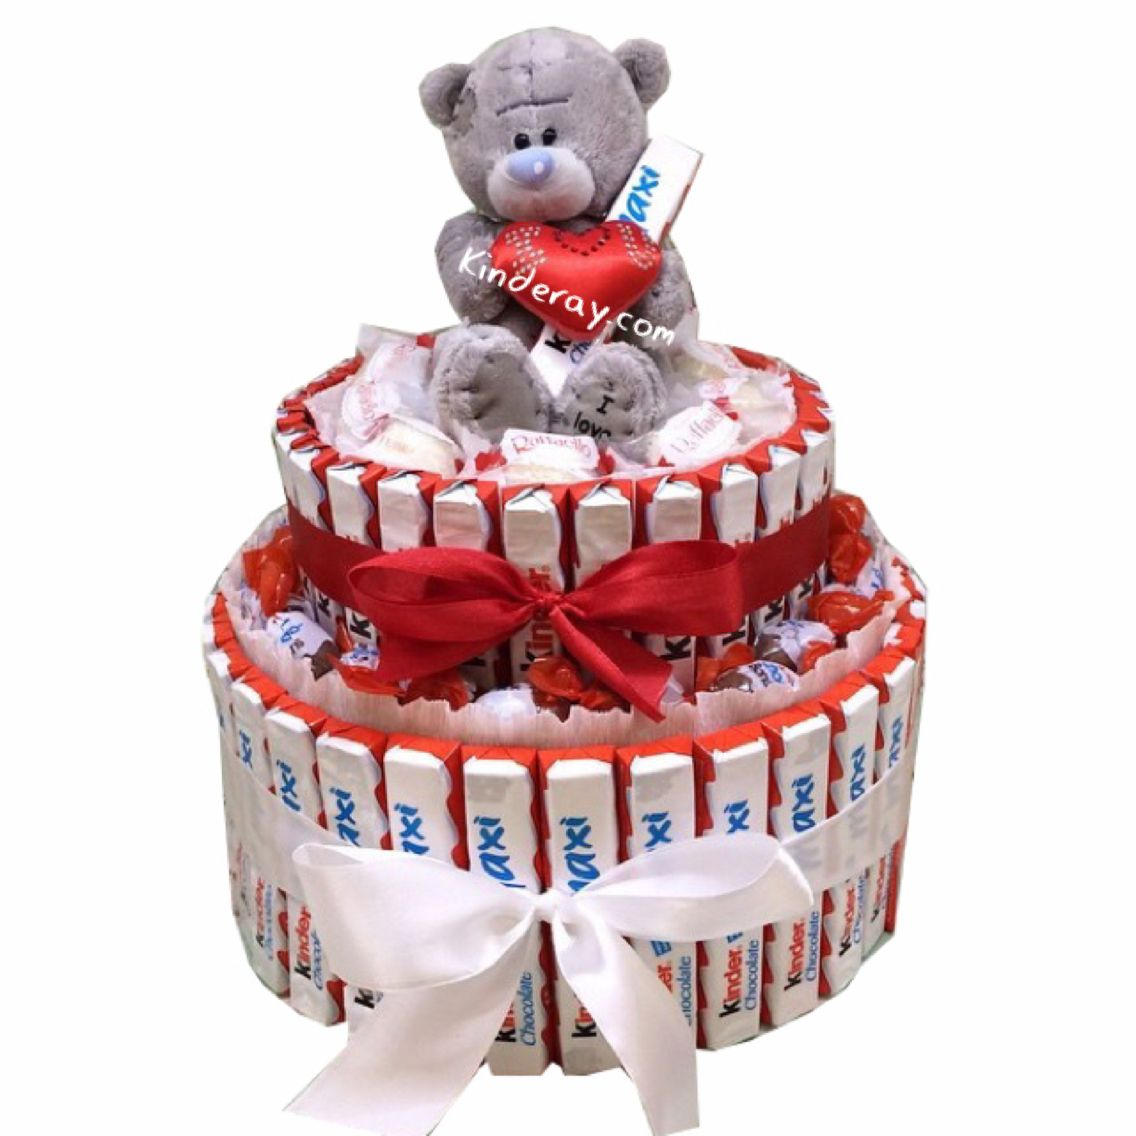 Kinder surpise cake with teddy bearkinder tortu teddy i love u kinder surpise cake with teddy bearkinder tortu teddy i love u miskasi negle Image collections